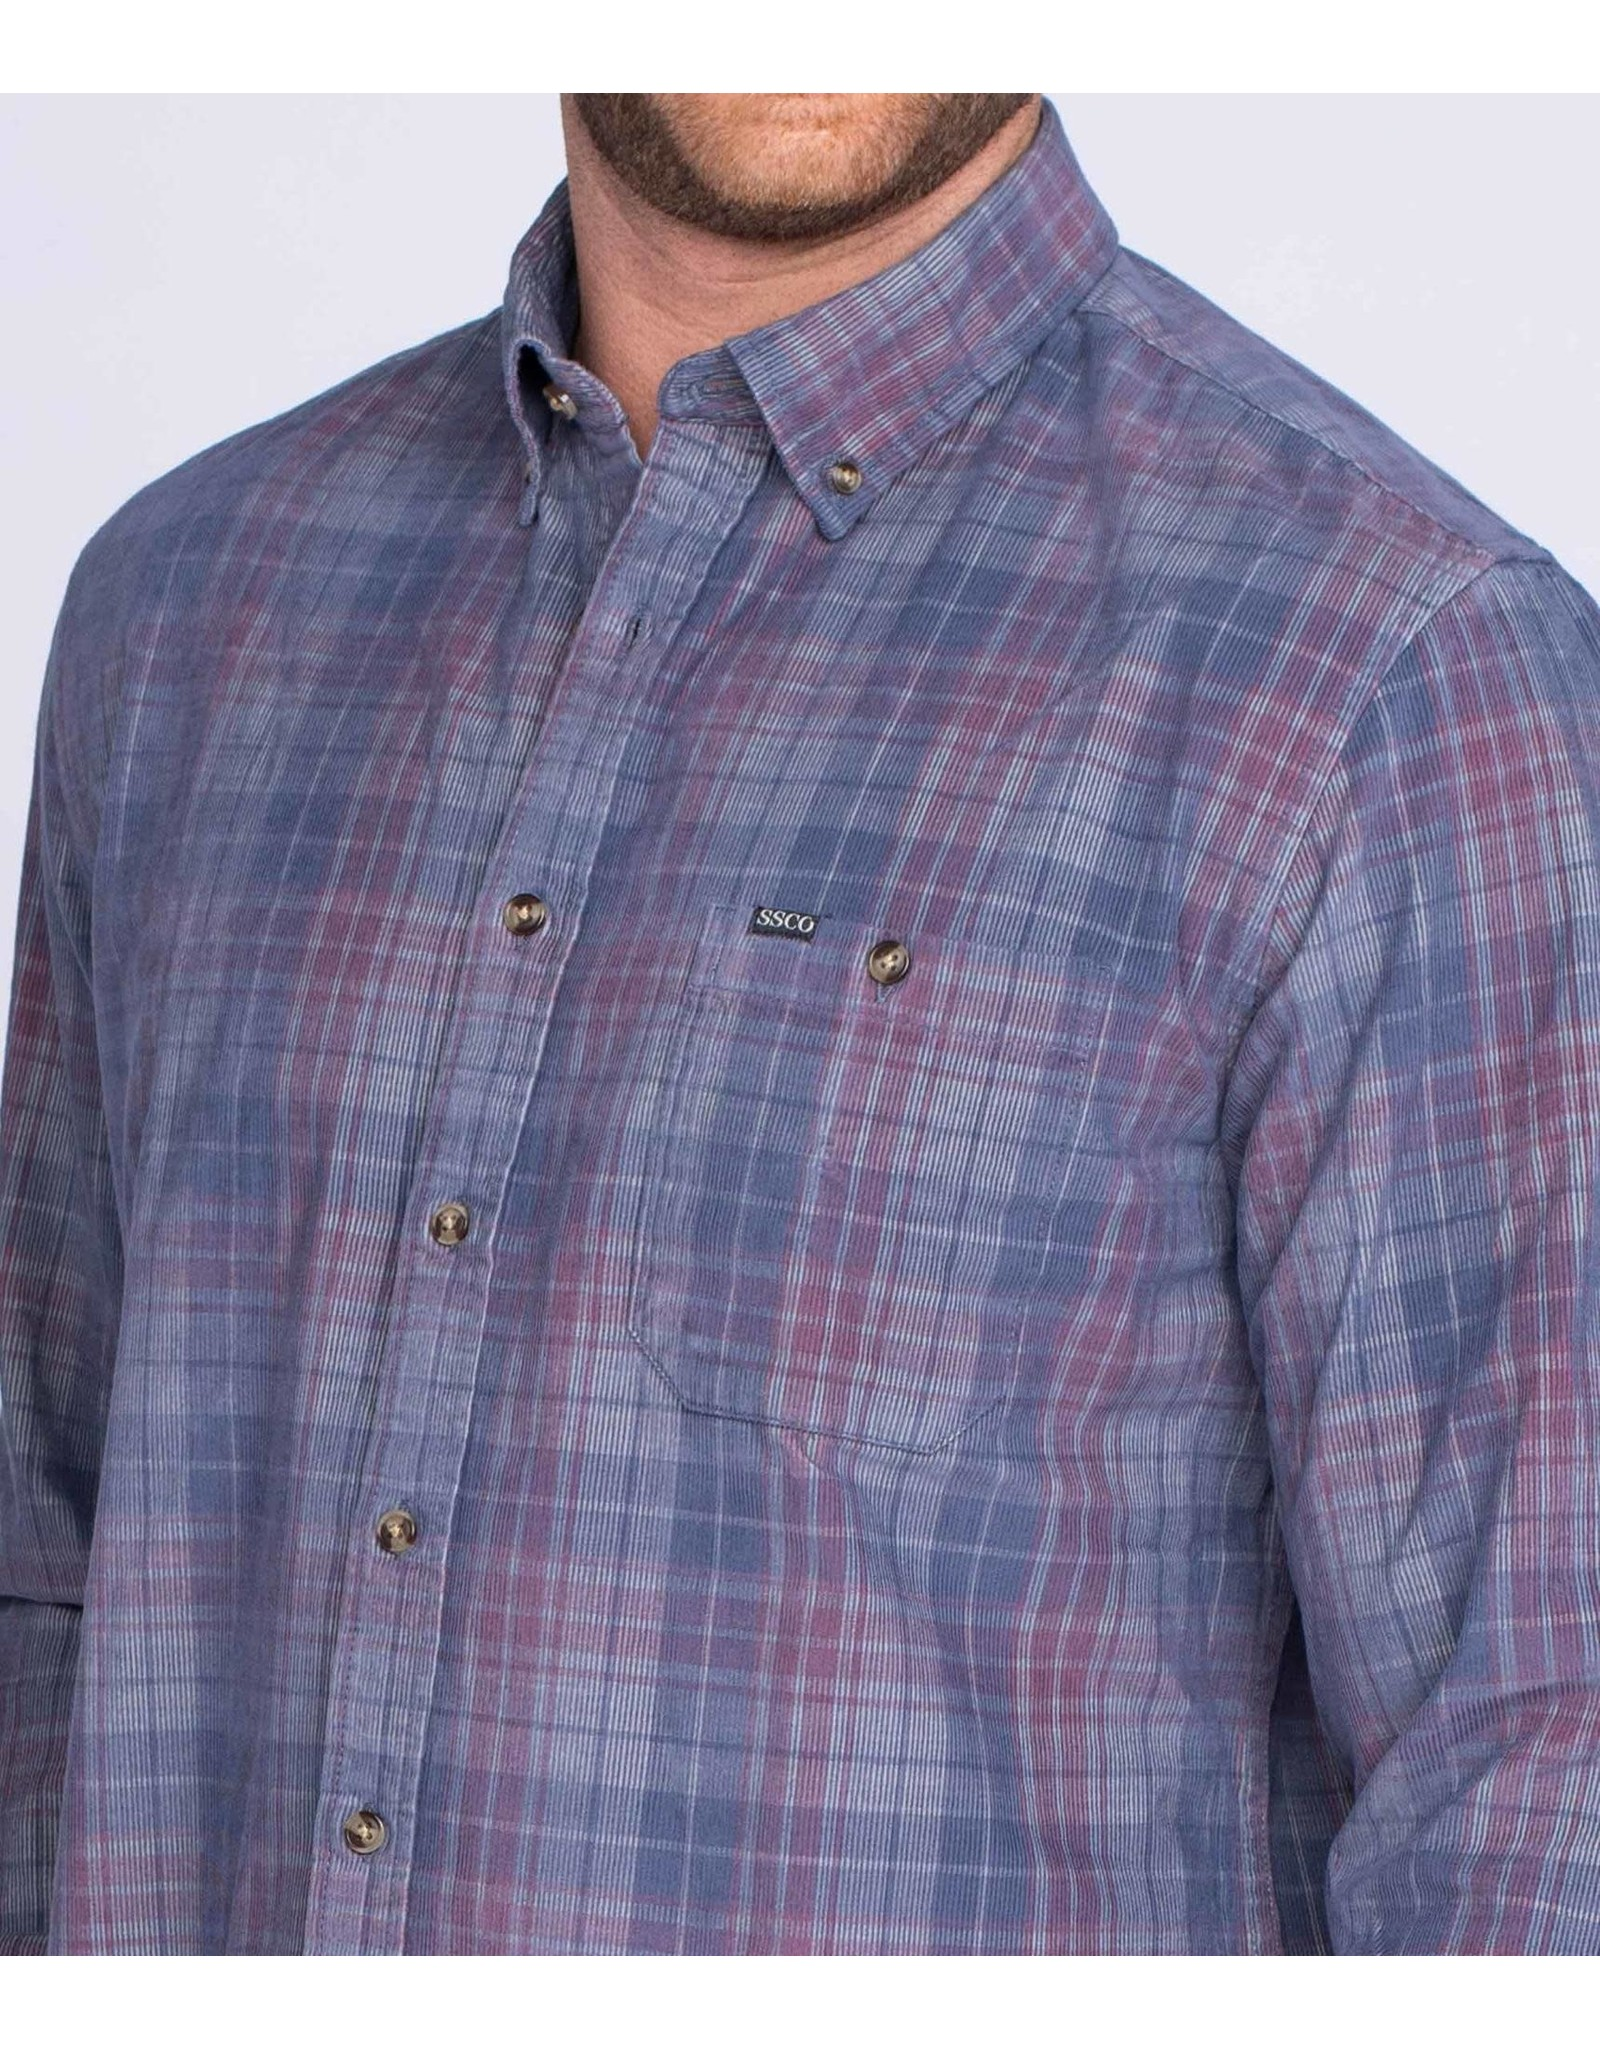 Southern Shirt Co. Southern Shirt Co. Braxton Lightweight Flannel L/S